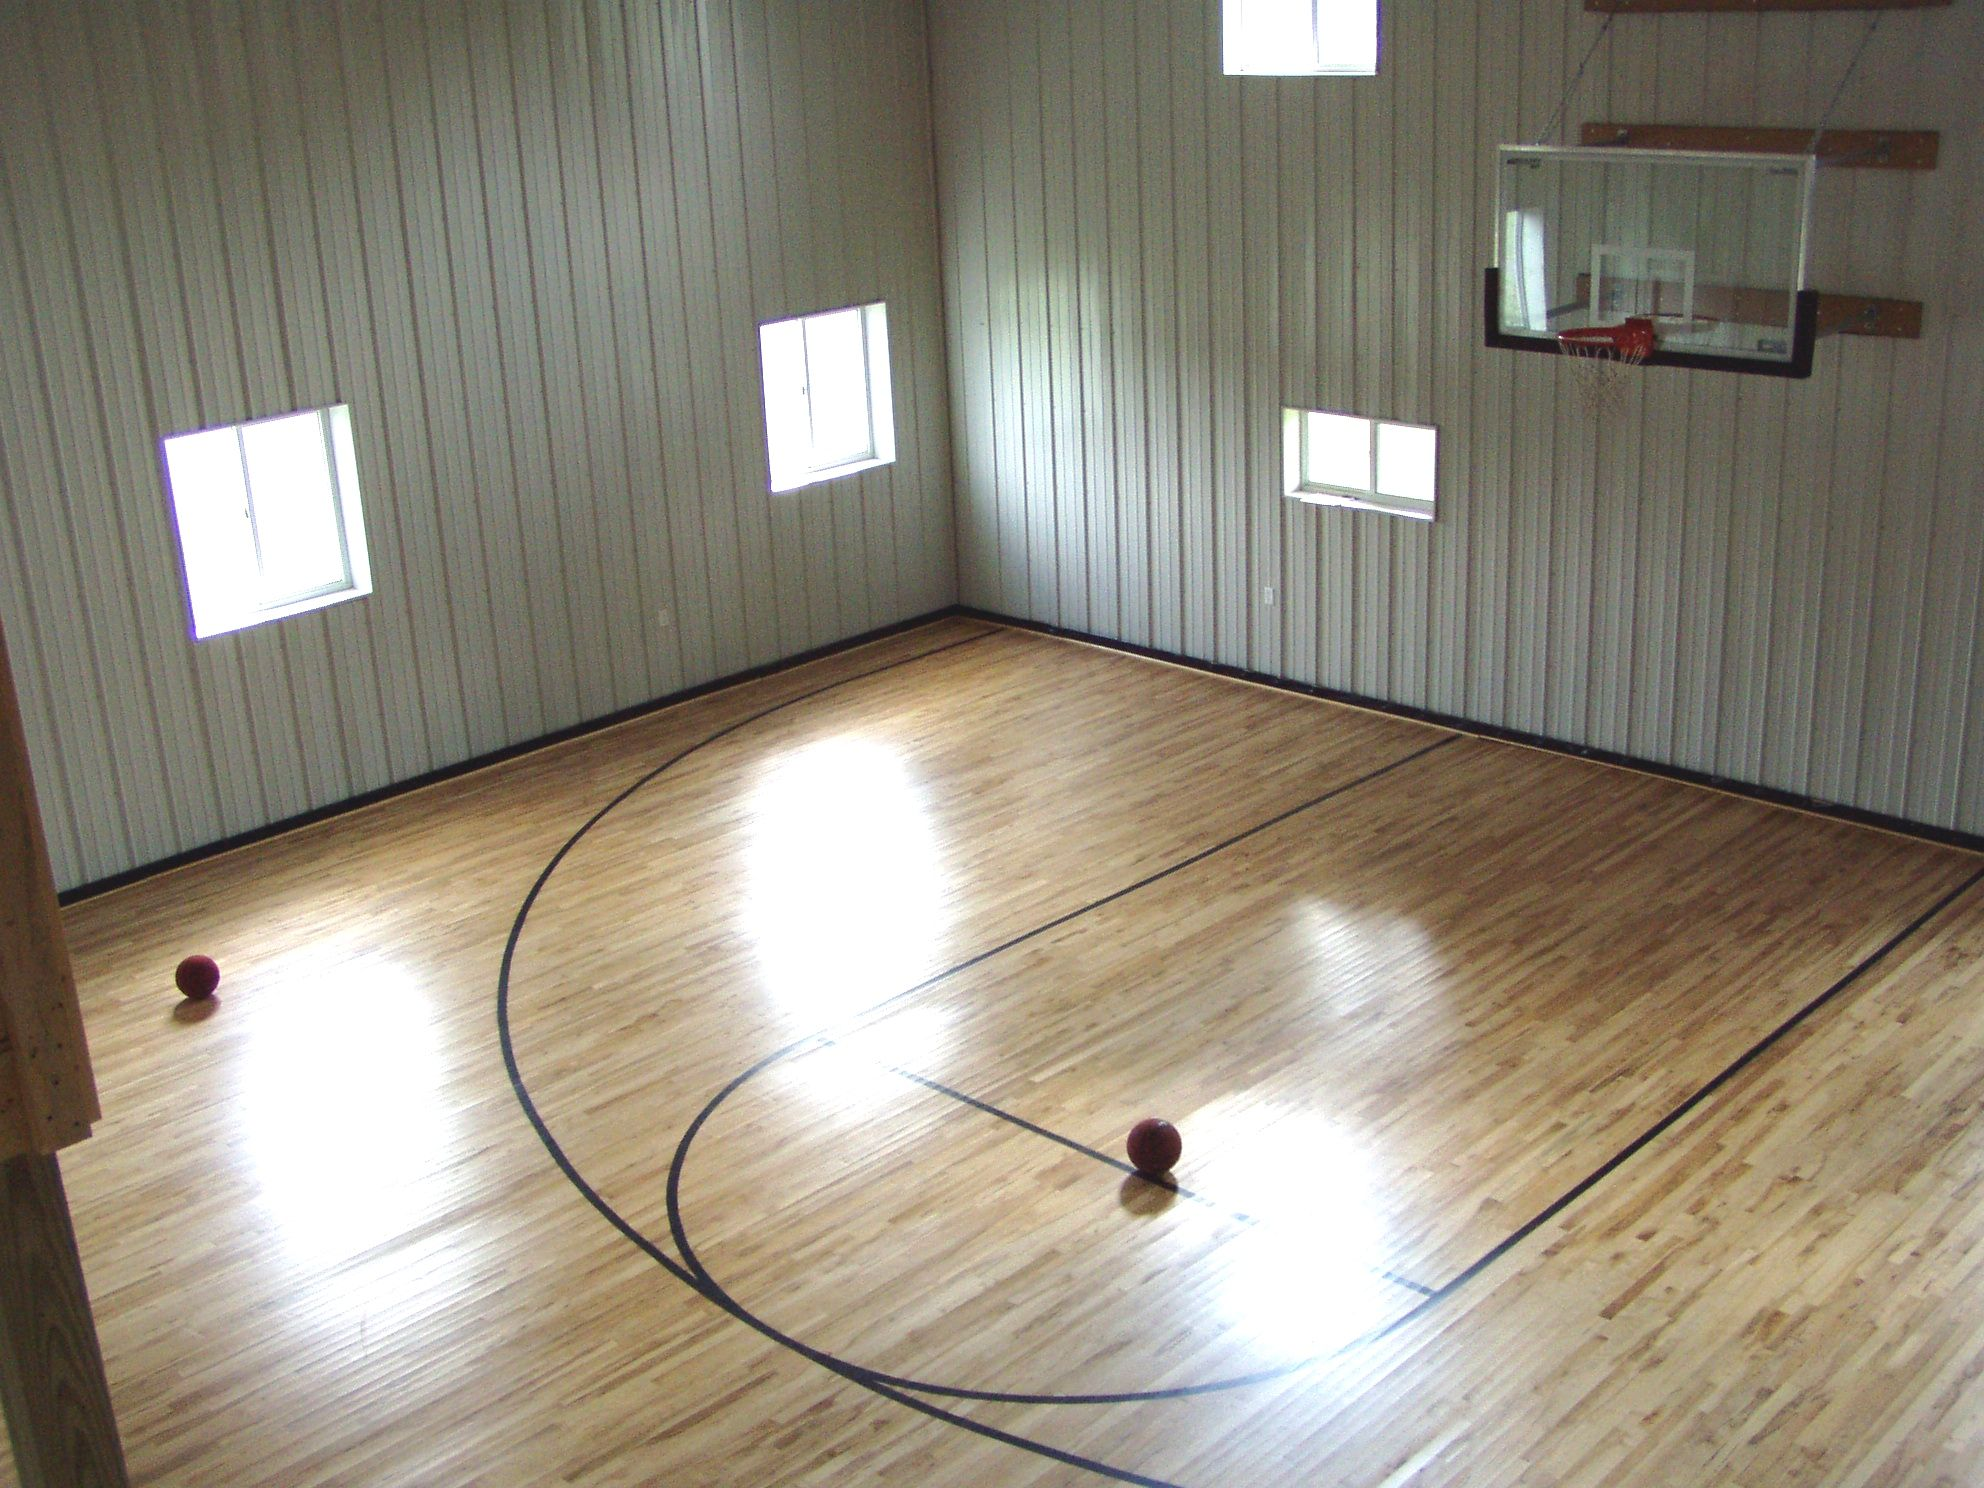 Insulated Lined Half Court Basketball For The Kids Both Young And Old Home Gym Decor Basketball Room Home Gym Design